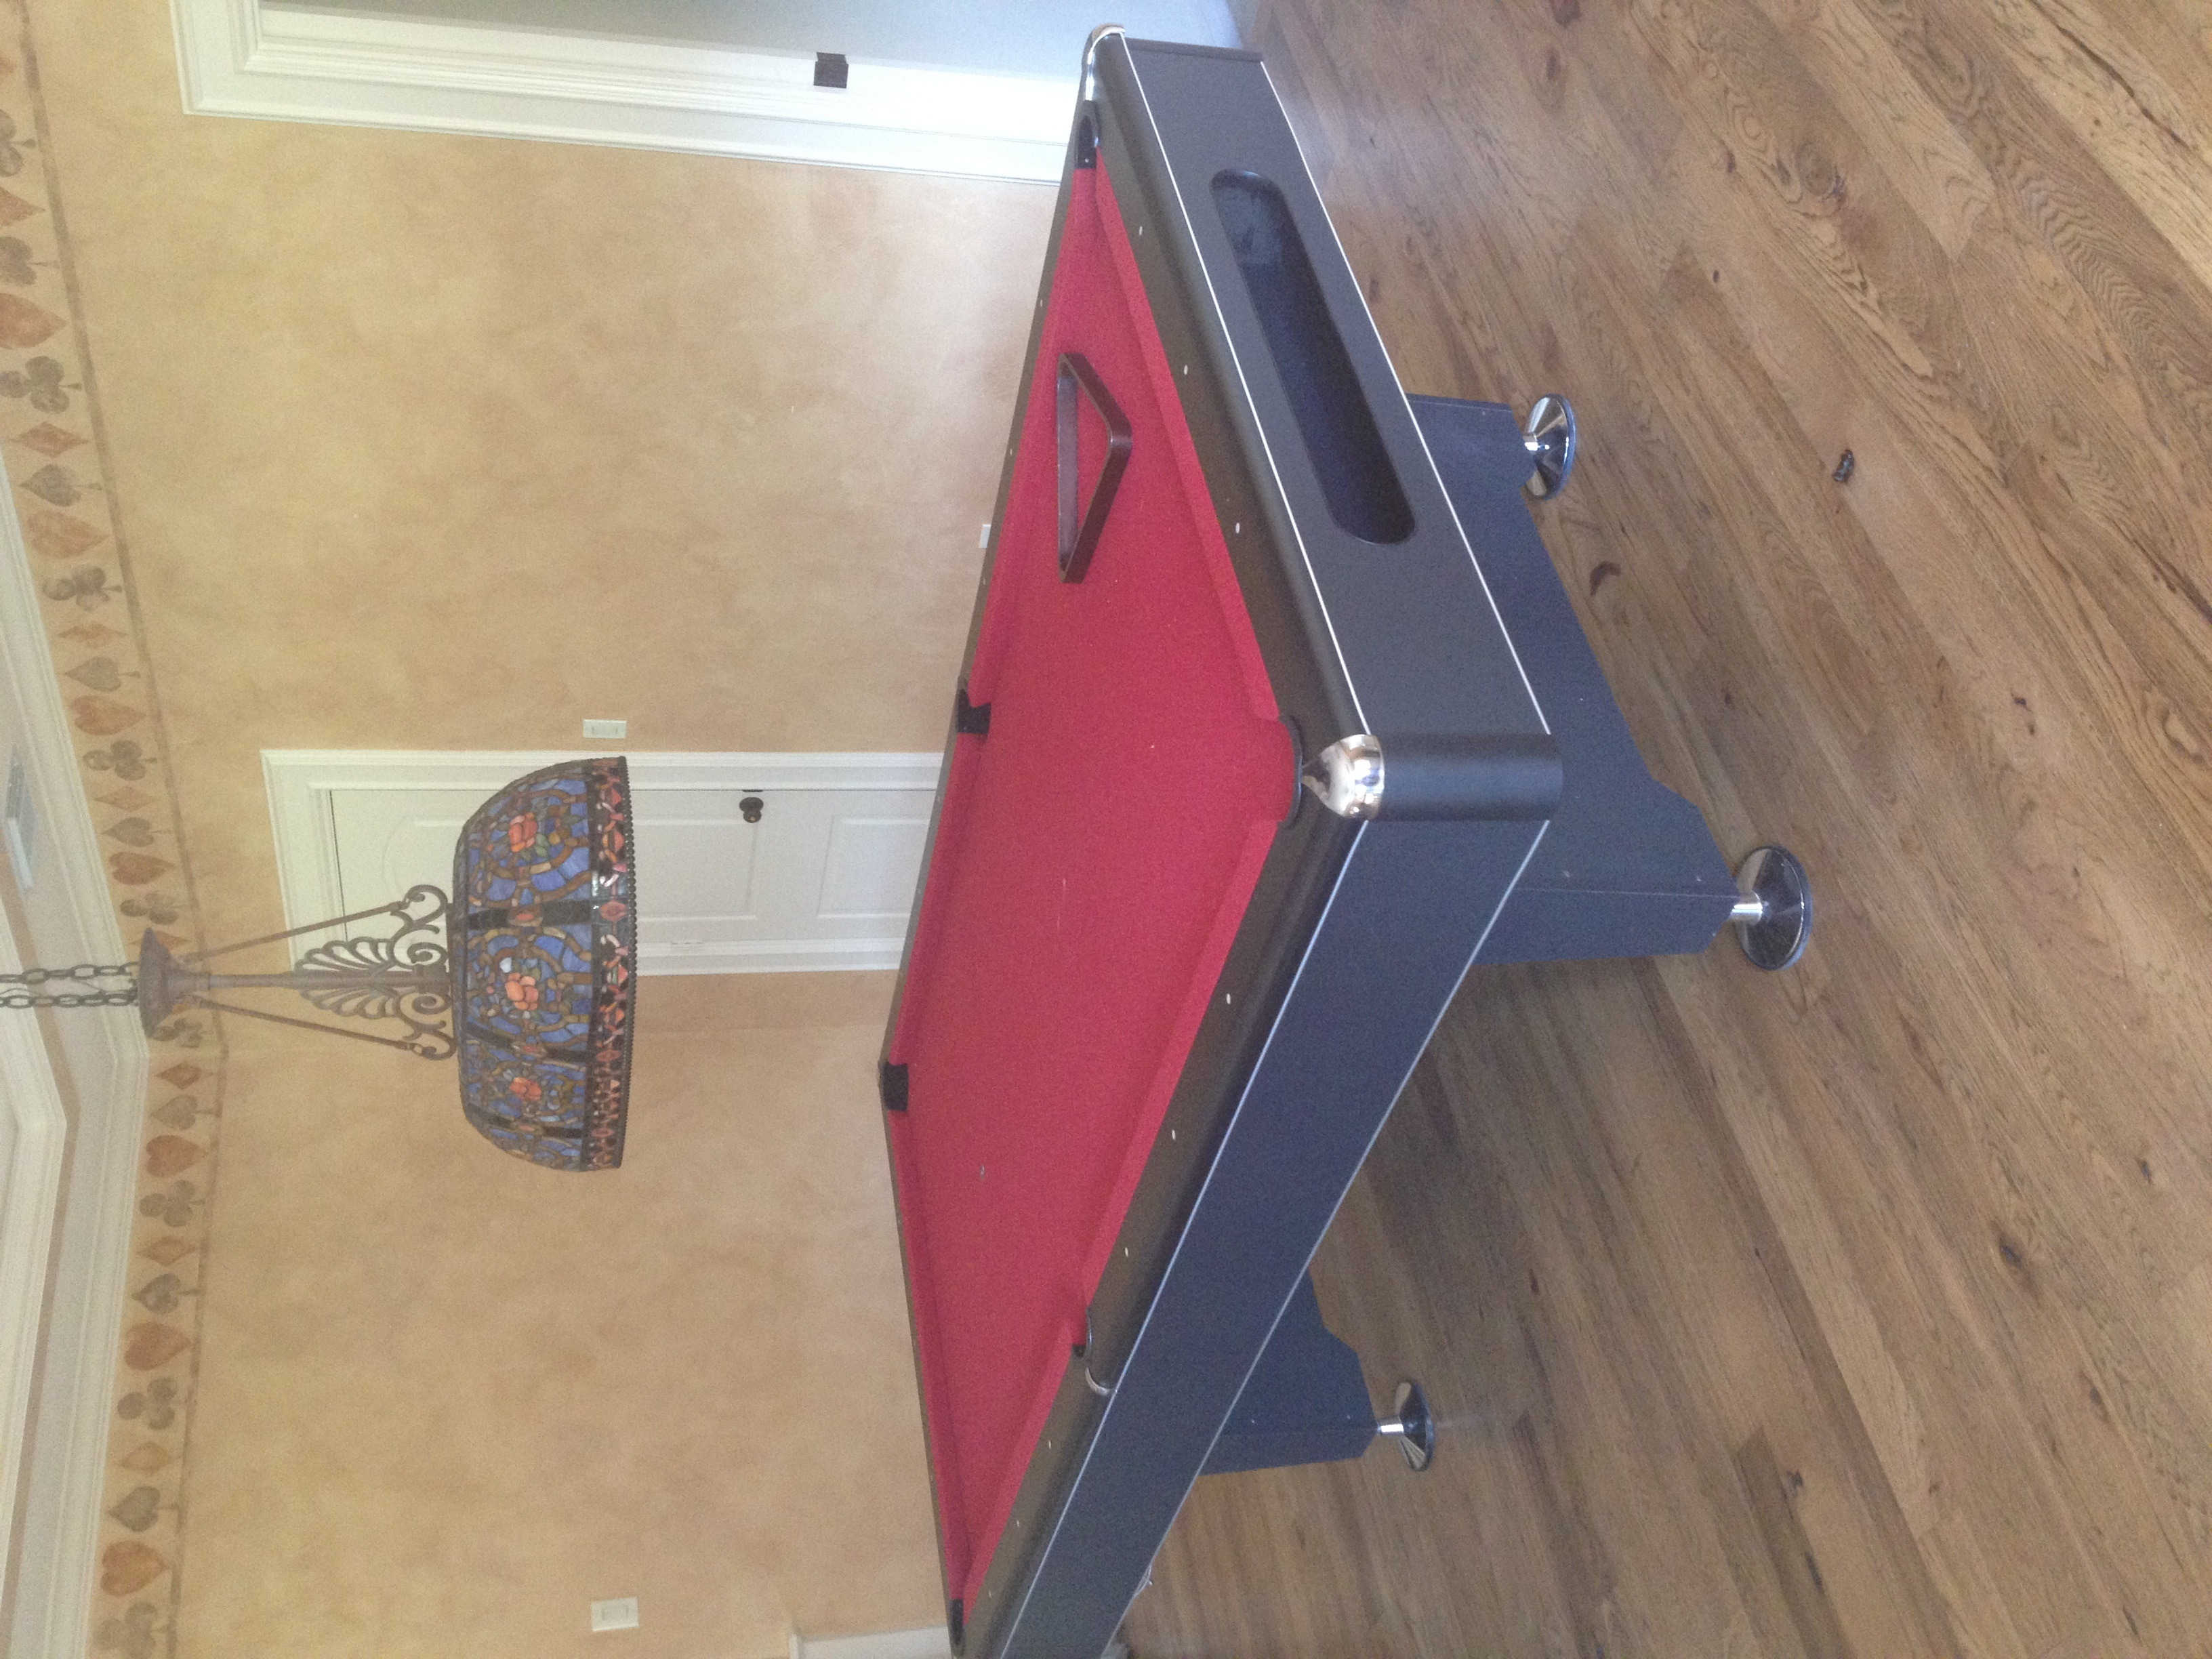 Need Help What Kind Of Pool Table Is This - Eliminator pool table